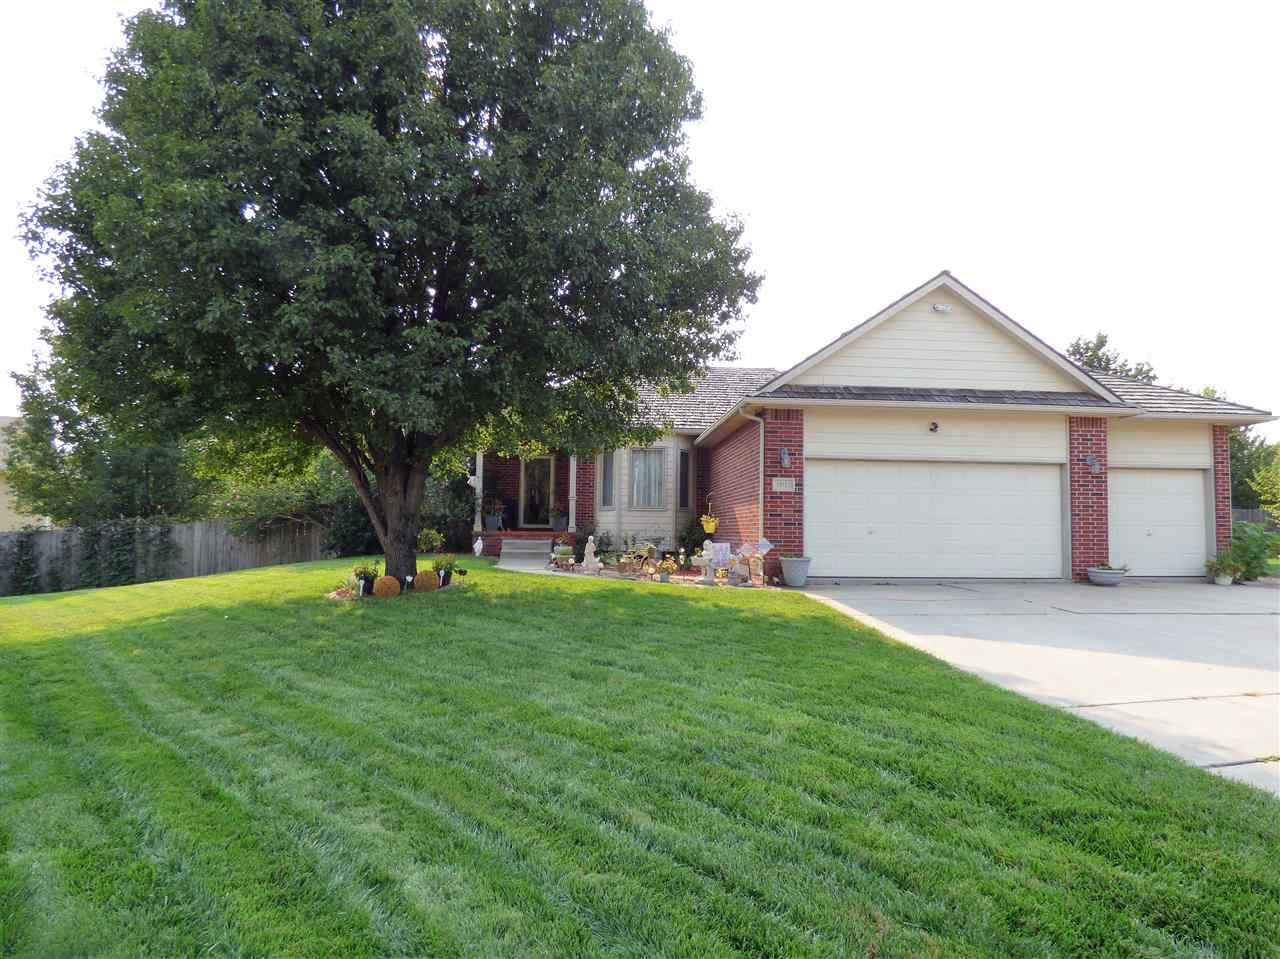 Welcome to your NEXT HOME! This beautiful, well maintained, 1-time owned 4 bdrm, 3 bath ranch is loc